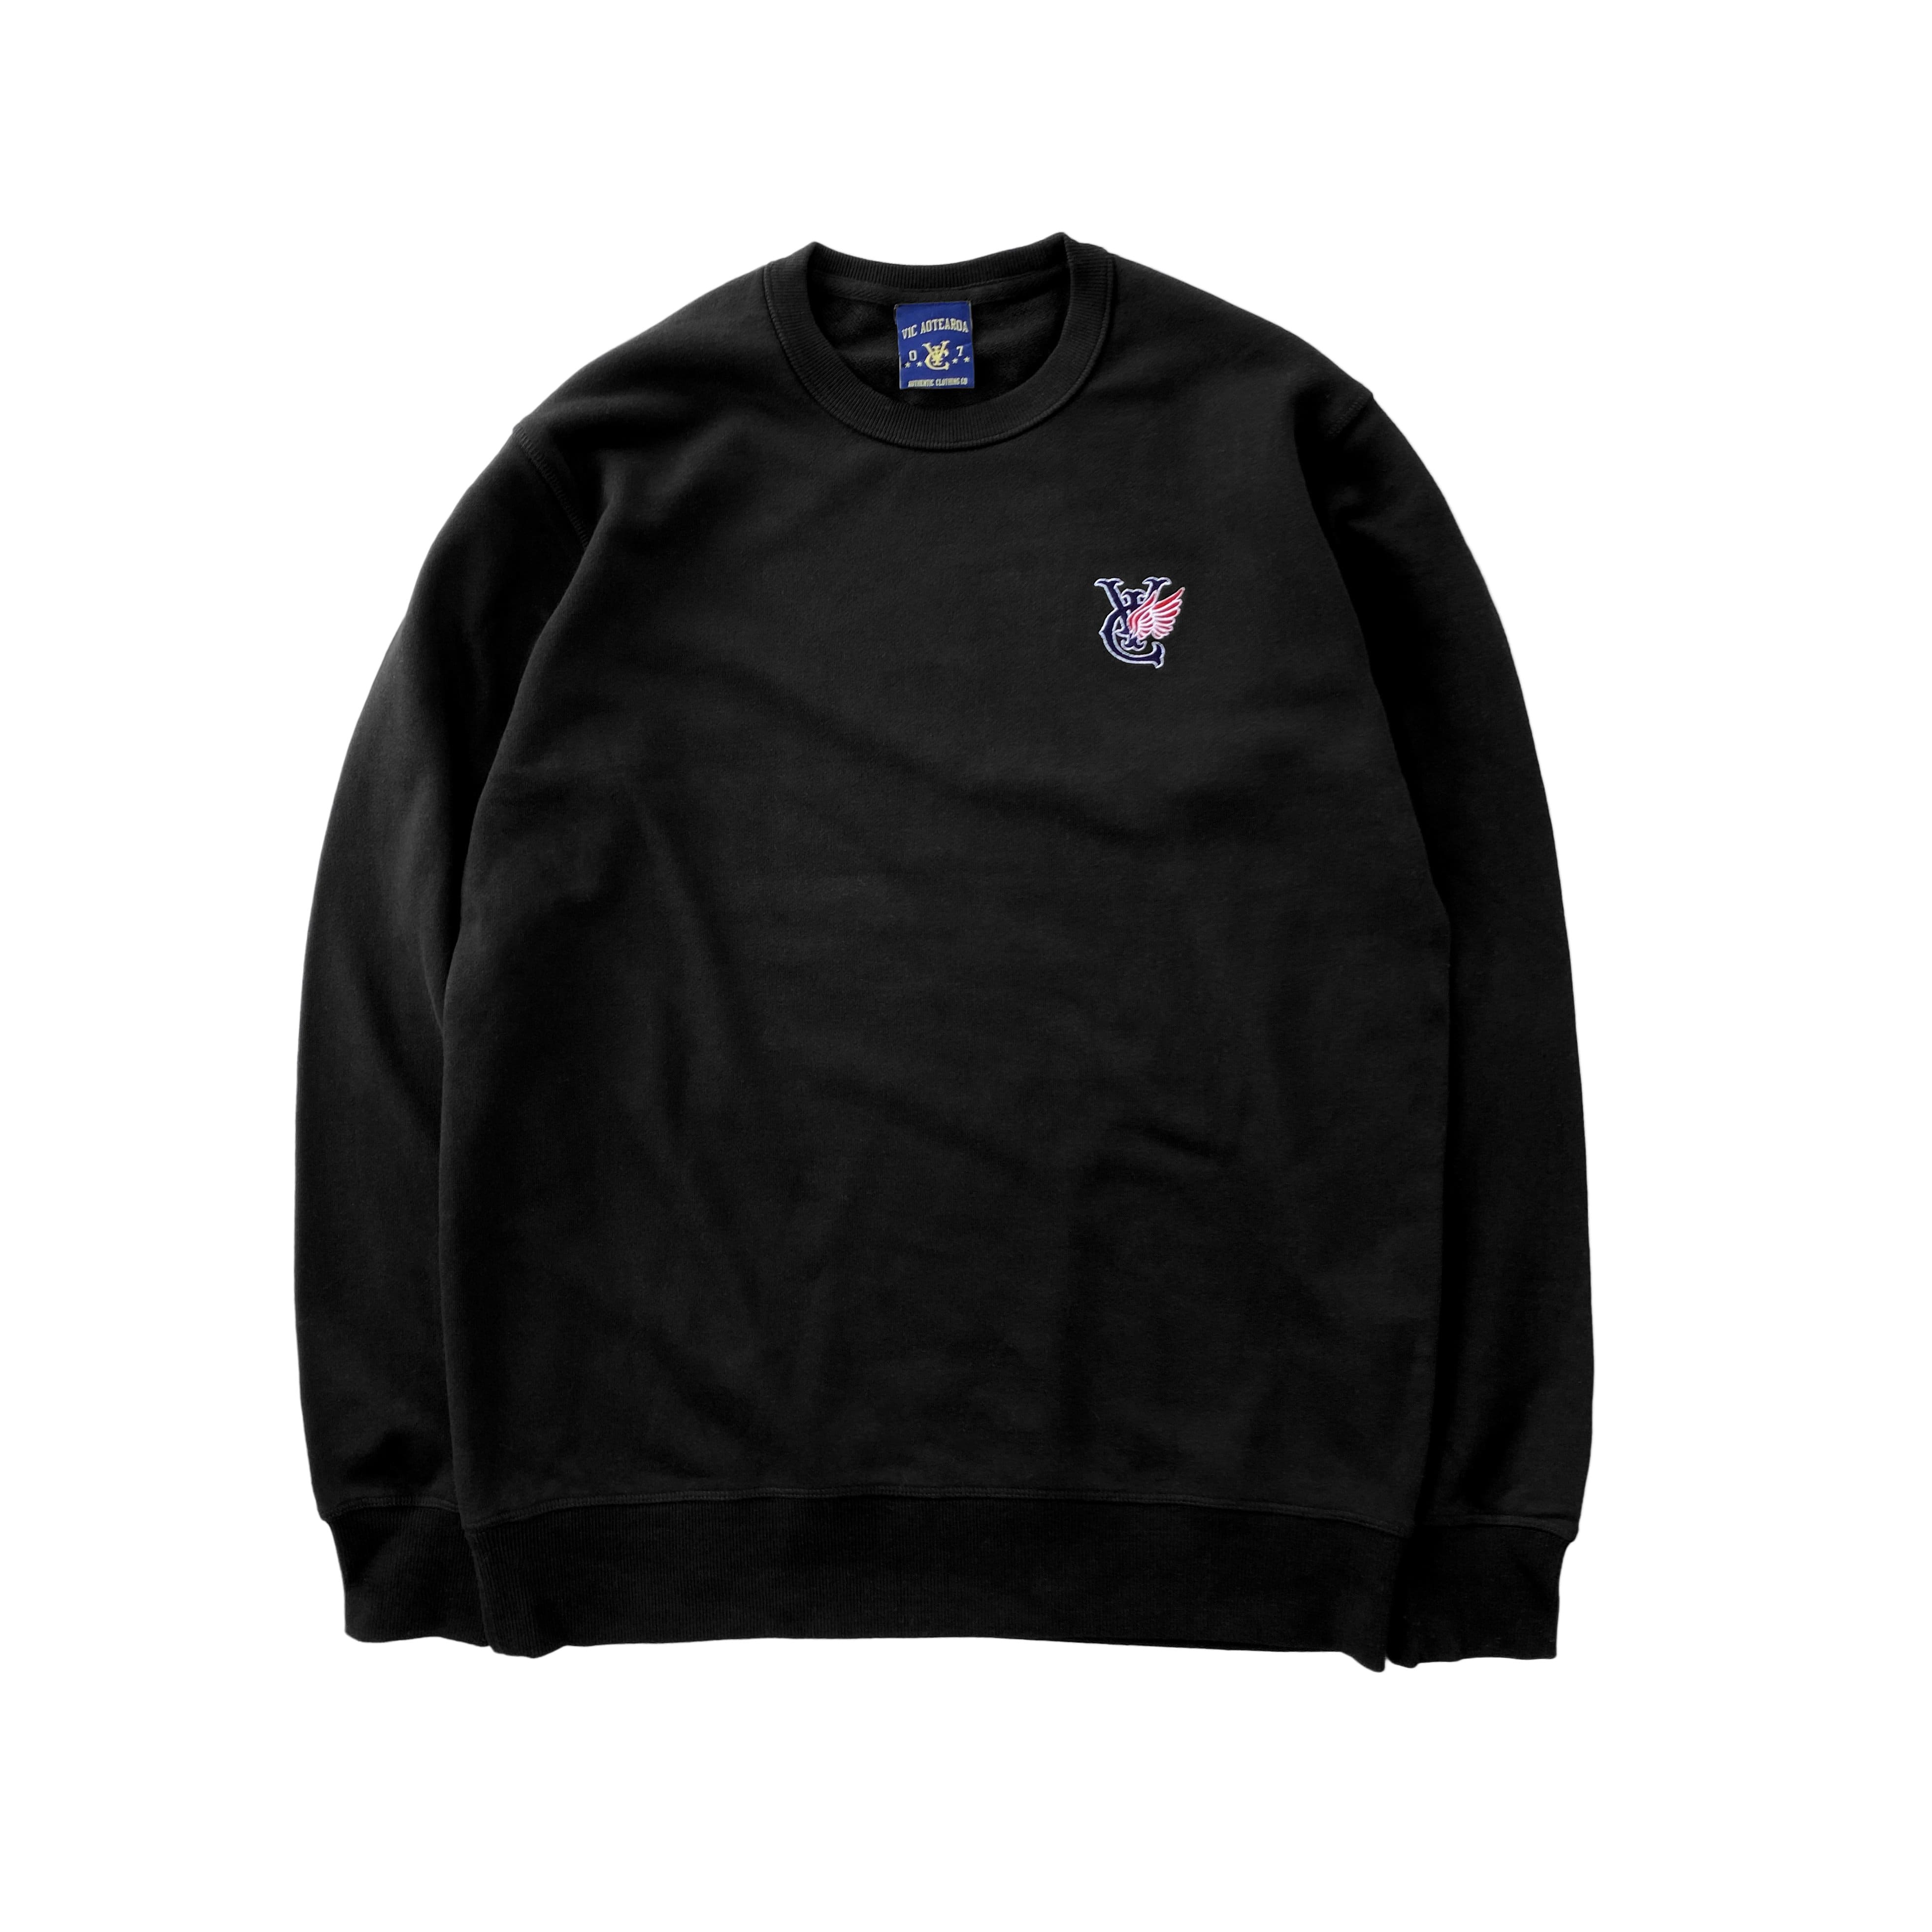 Premium quality sweatshirt Crewneck by New Zealand skate and streetwear clothing label VIC Apparel. Classic minimal design. Relaxed fit.